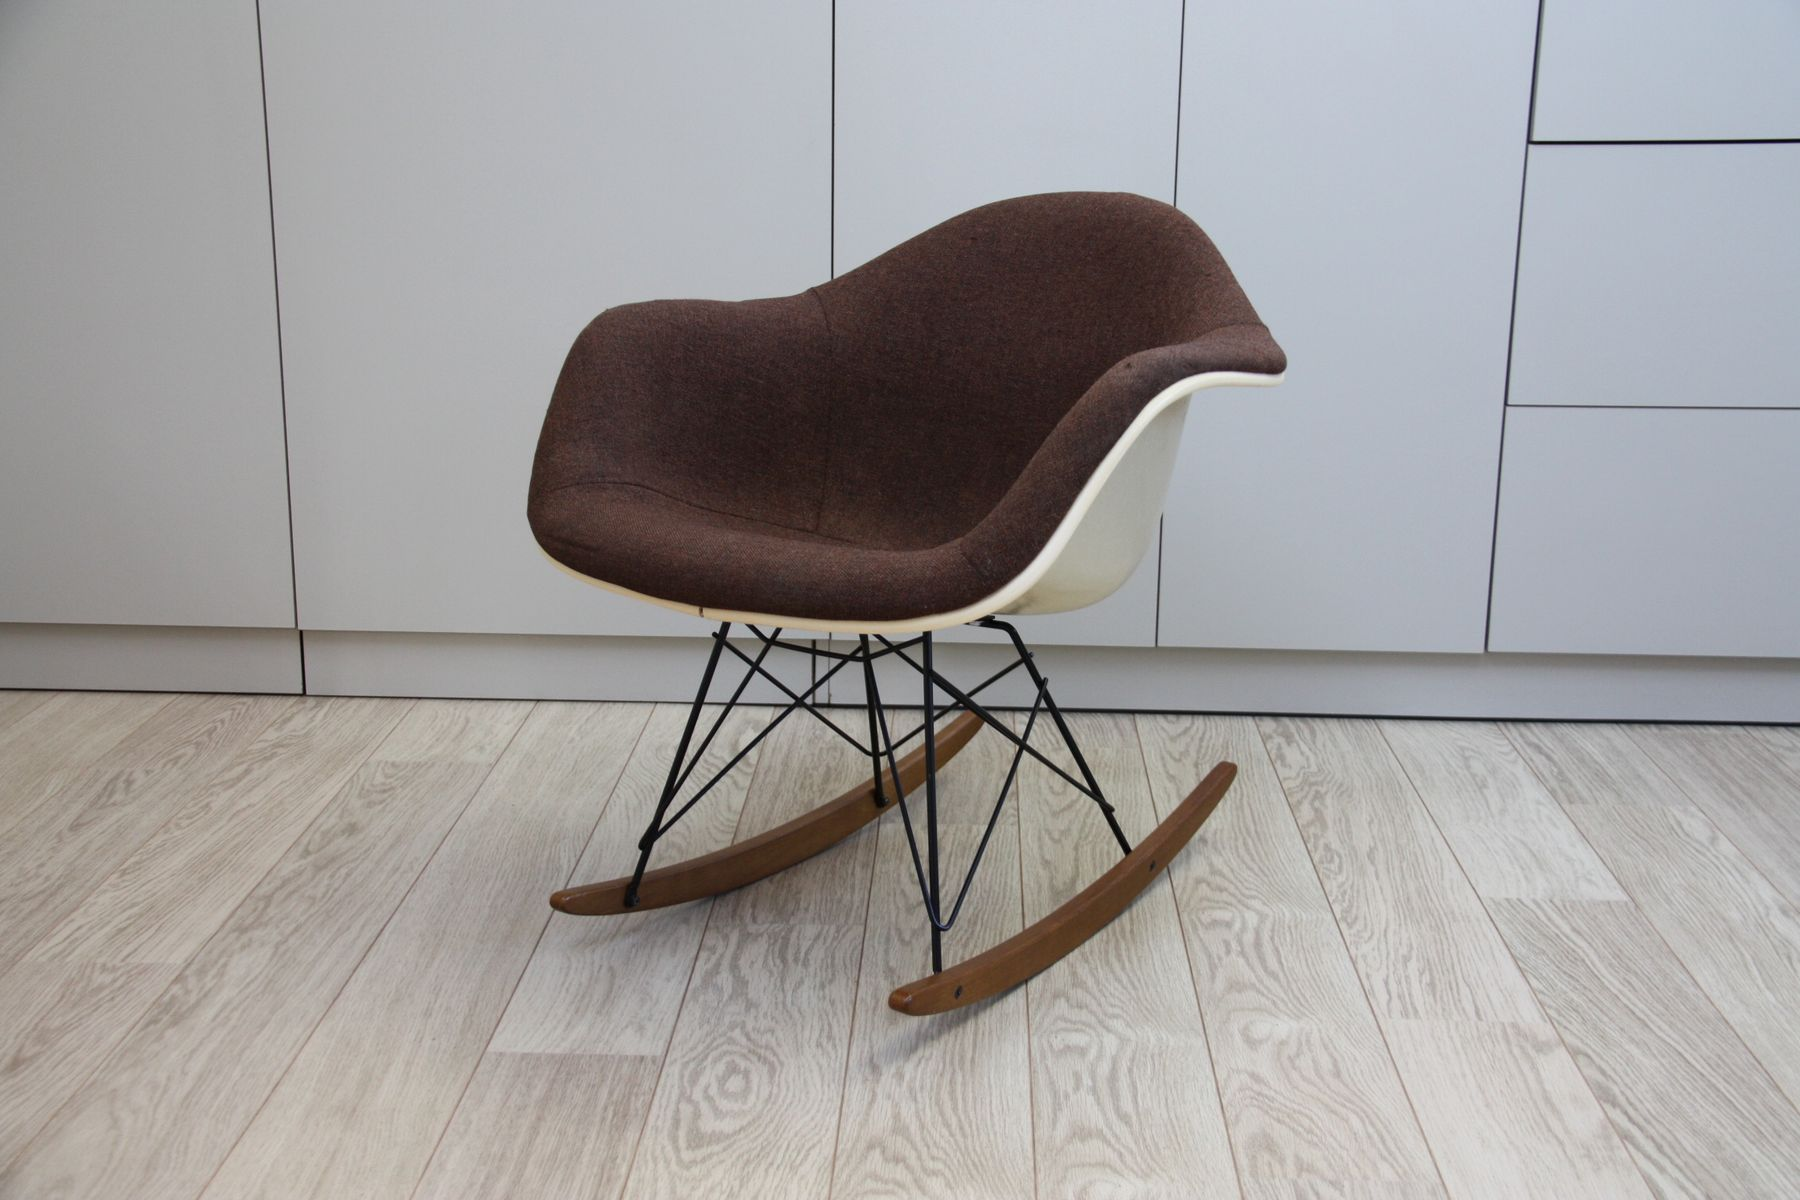 Charles Eames Schaukelstuhl Charles Eames Rocking Chair Vitra Vitra Charles Eames Lounge